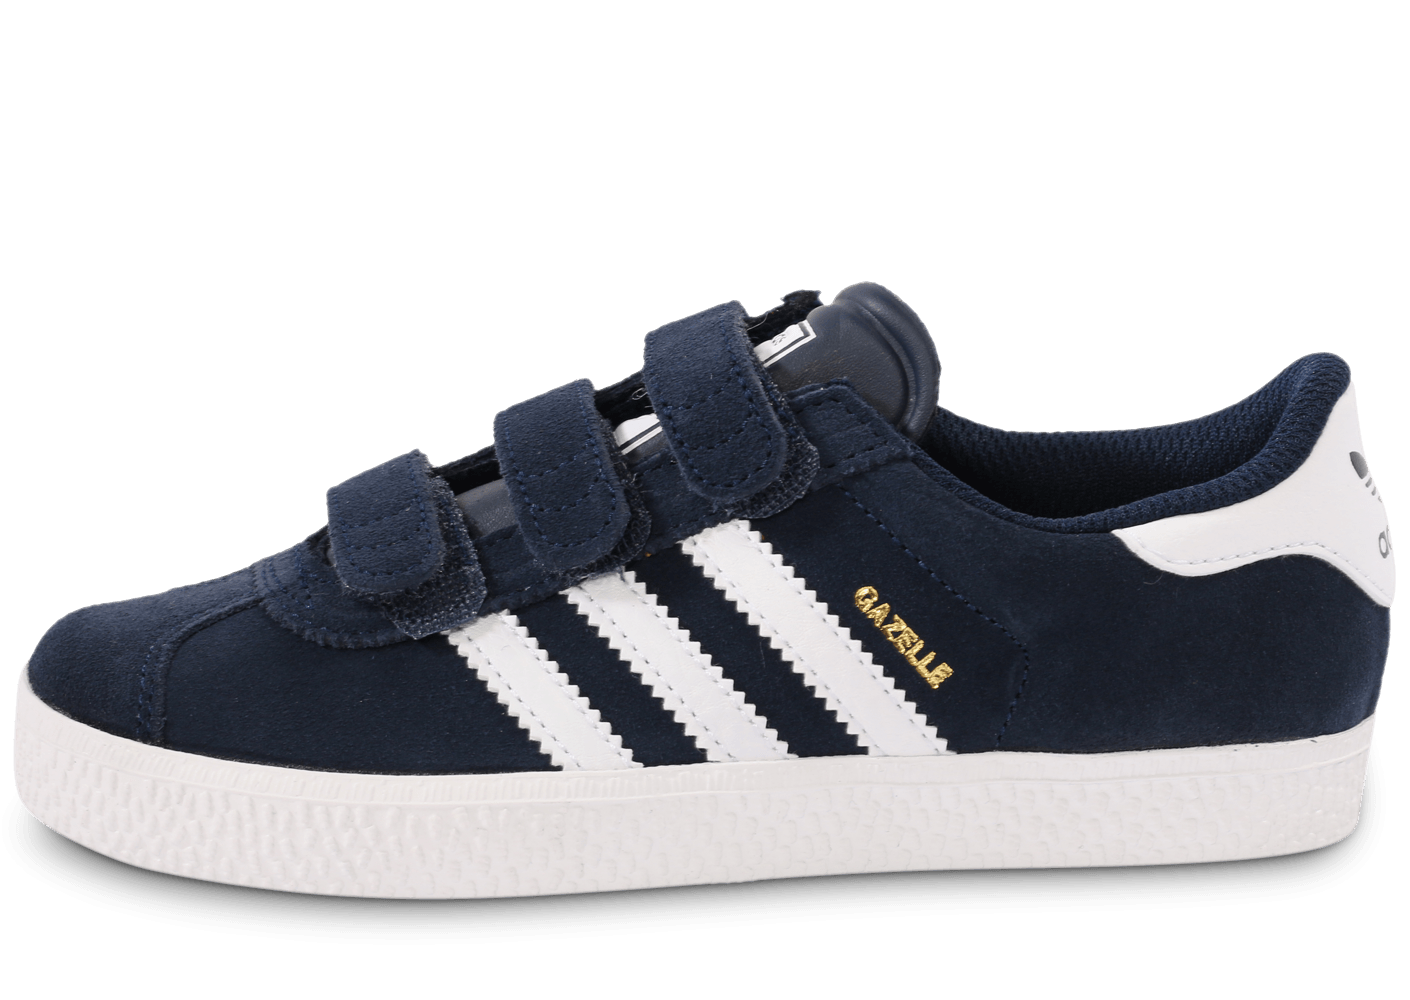 Baskets Adidas Gazelle Bleu Enfant